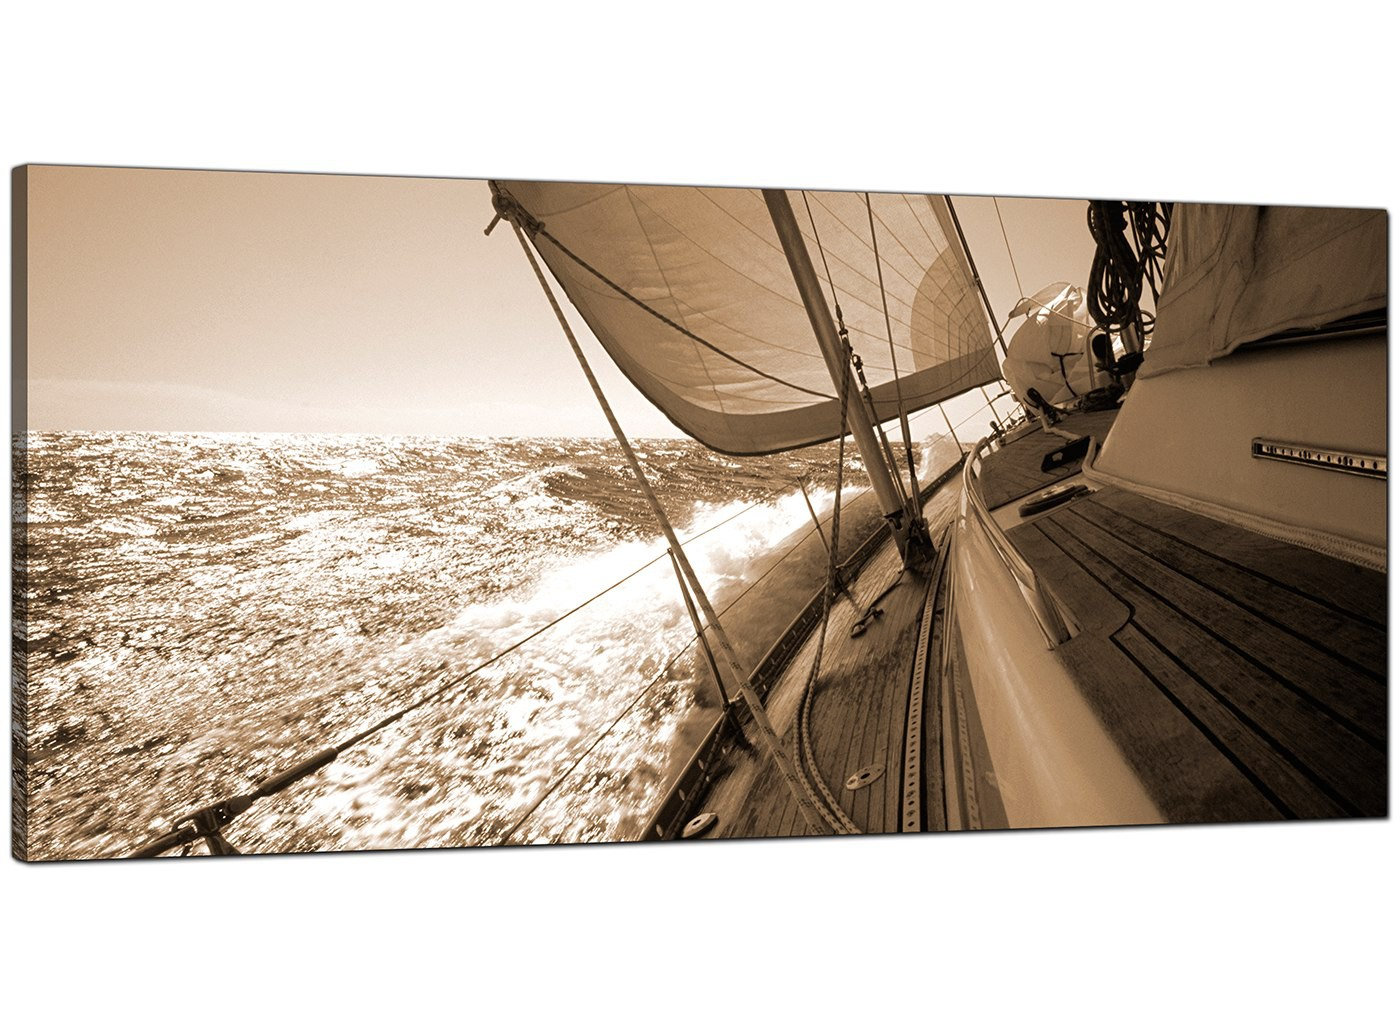 Large Brown Canvas Wall Art Of A Sailing Boat